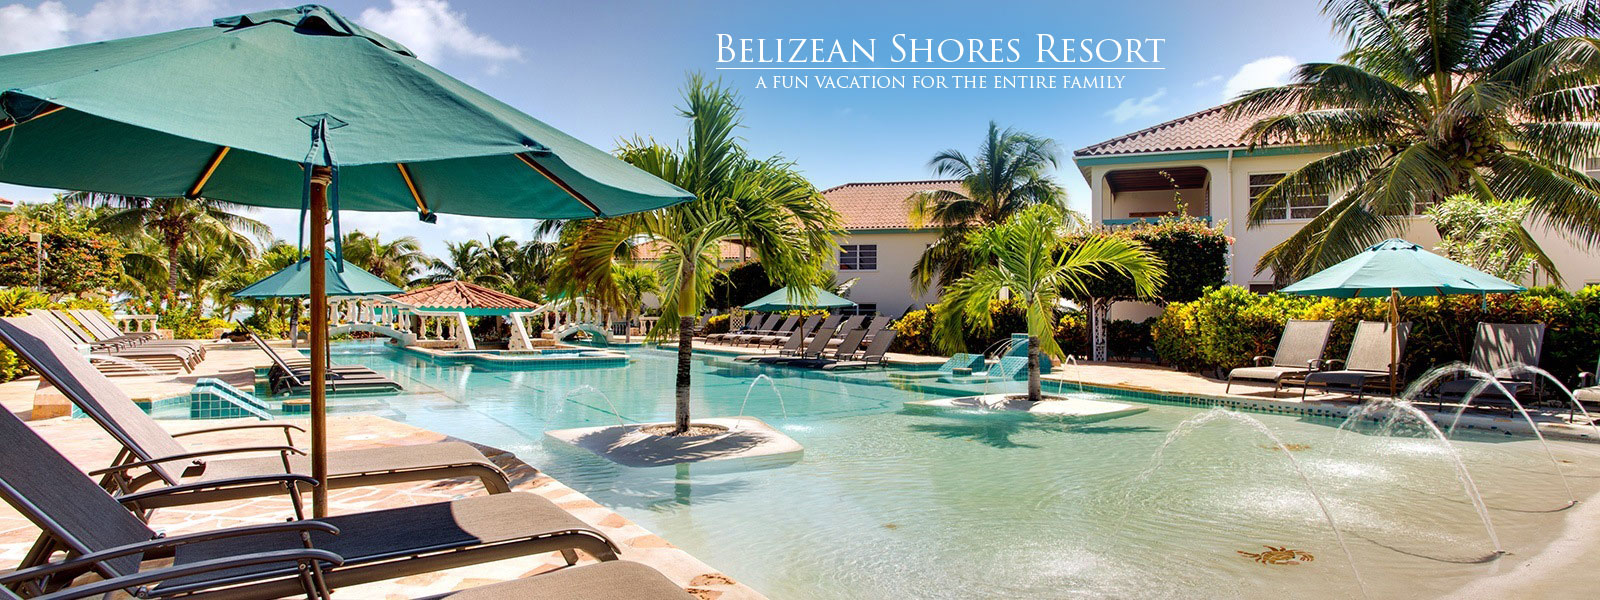 Belizean Shores Resort, Ambergris Caye, Belize